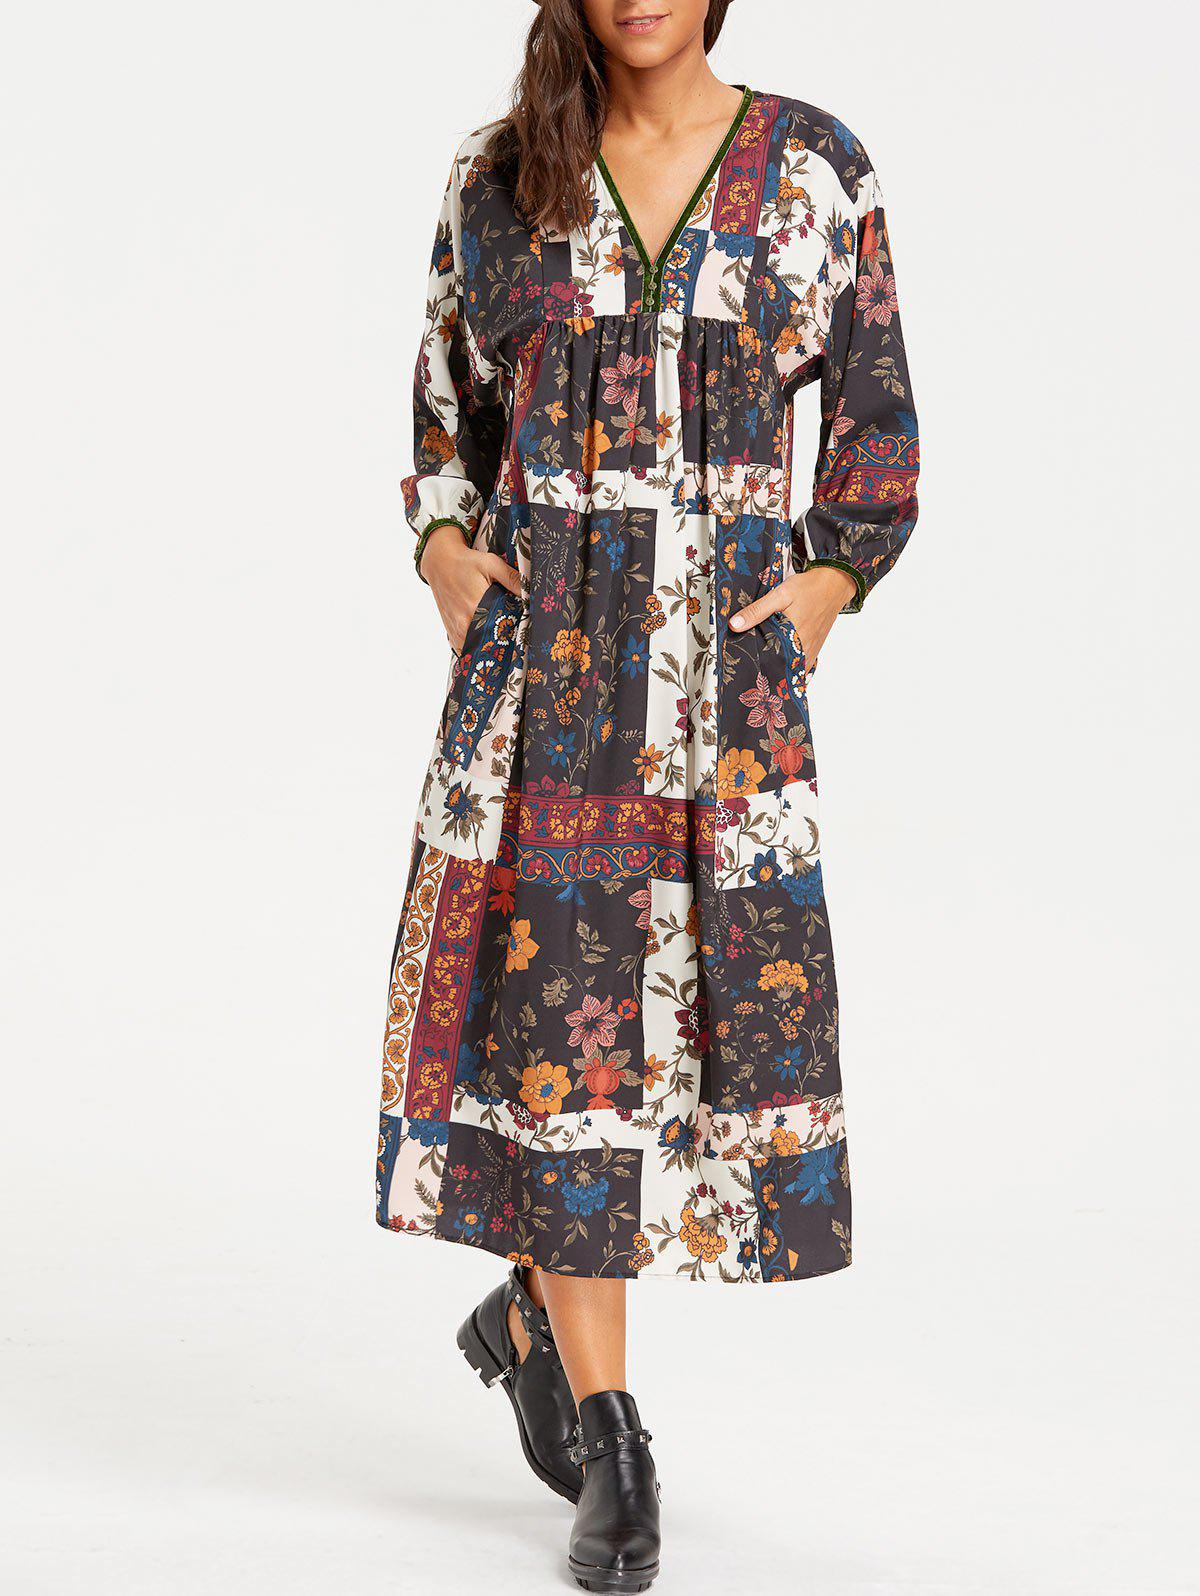 Robe à encolure en V et imprimé floral à carreaux - multicolore L